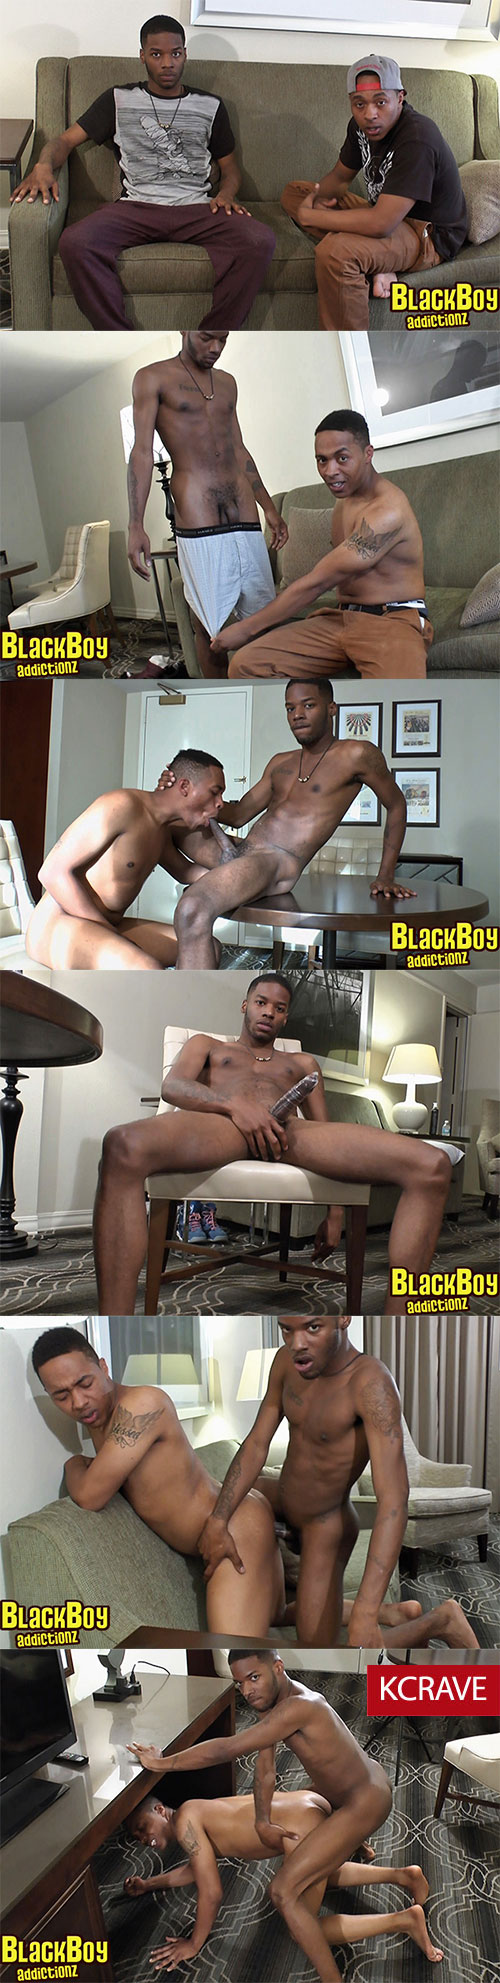 blackboyaddictionz-suspense-blake-bishop